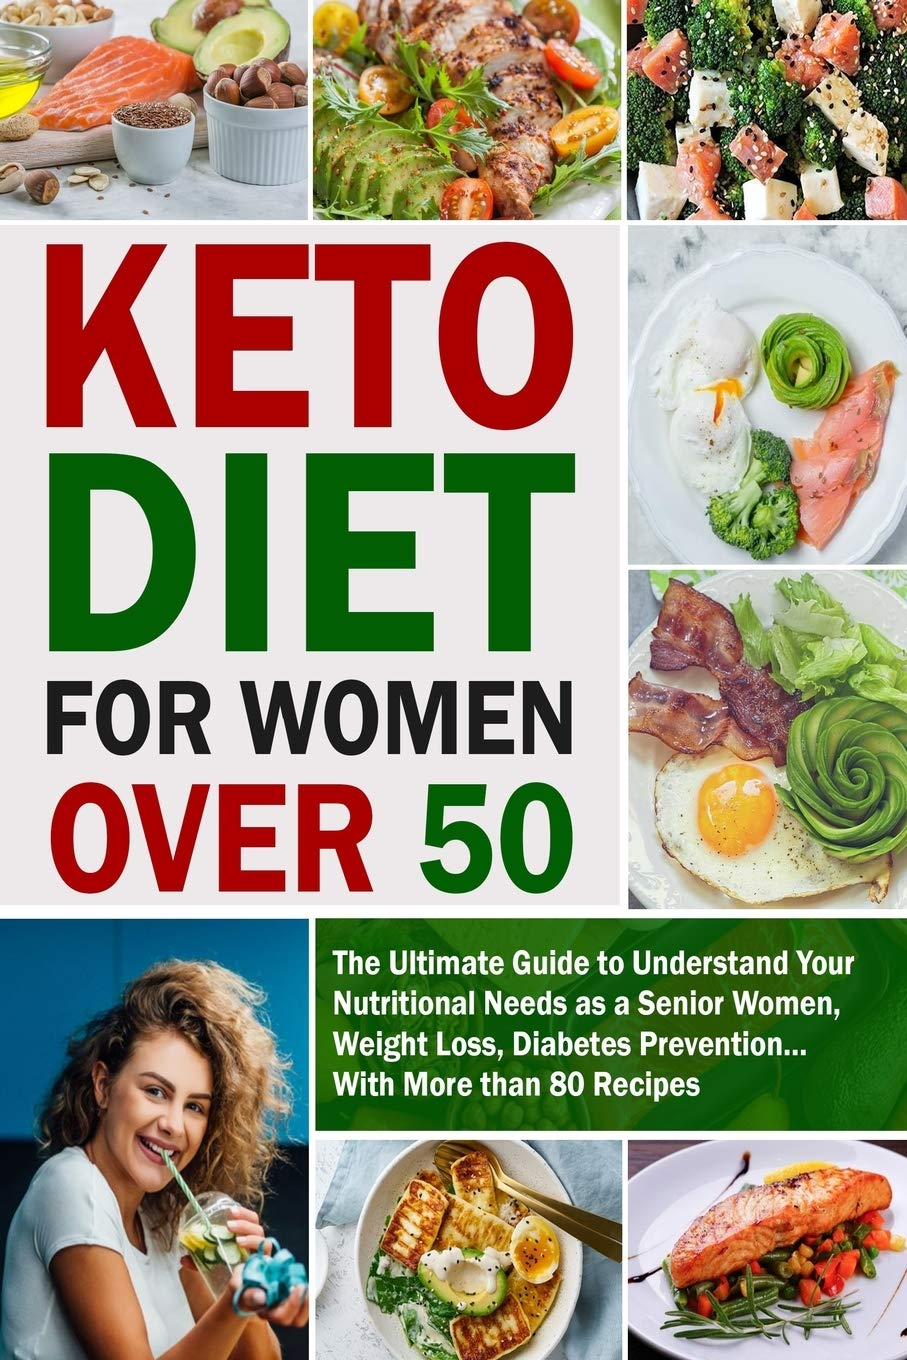 women over 50 keto diet support group